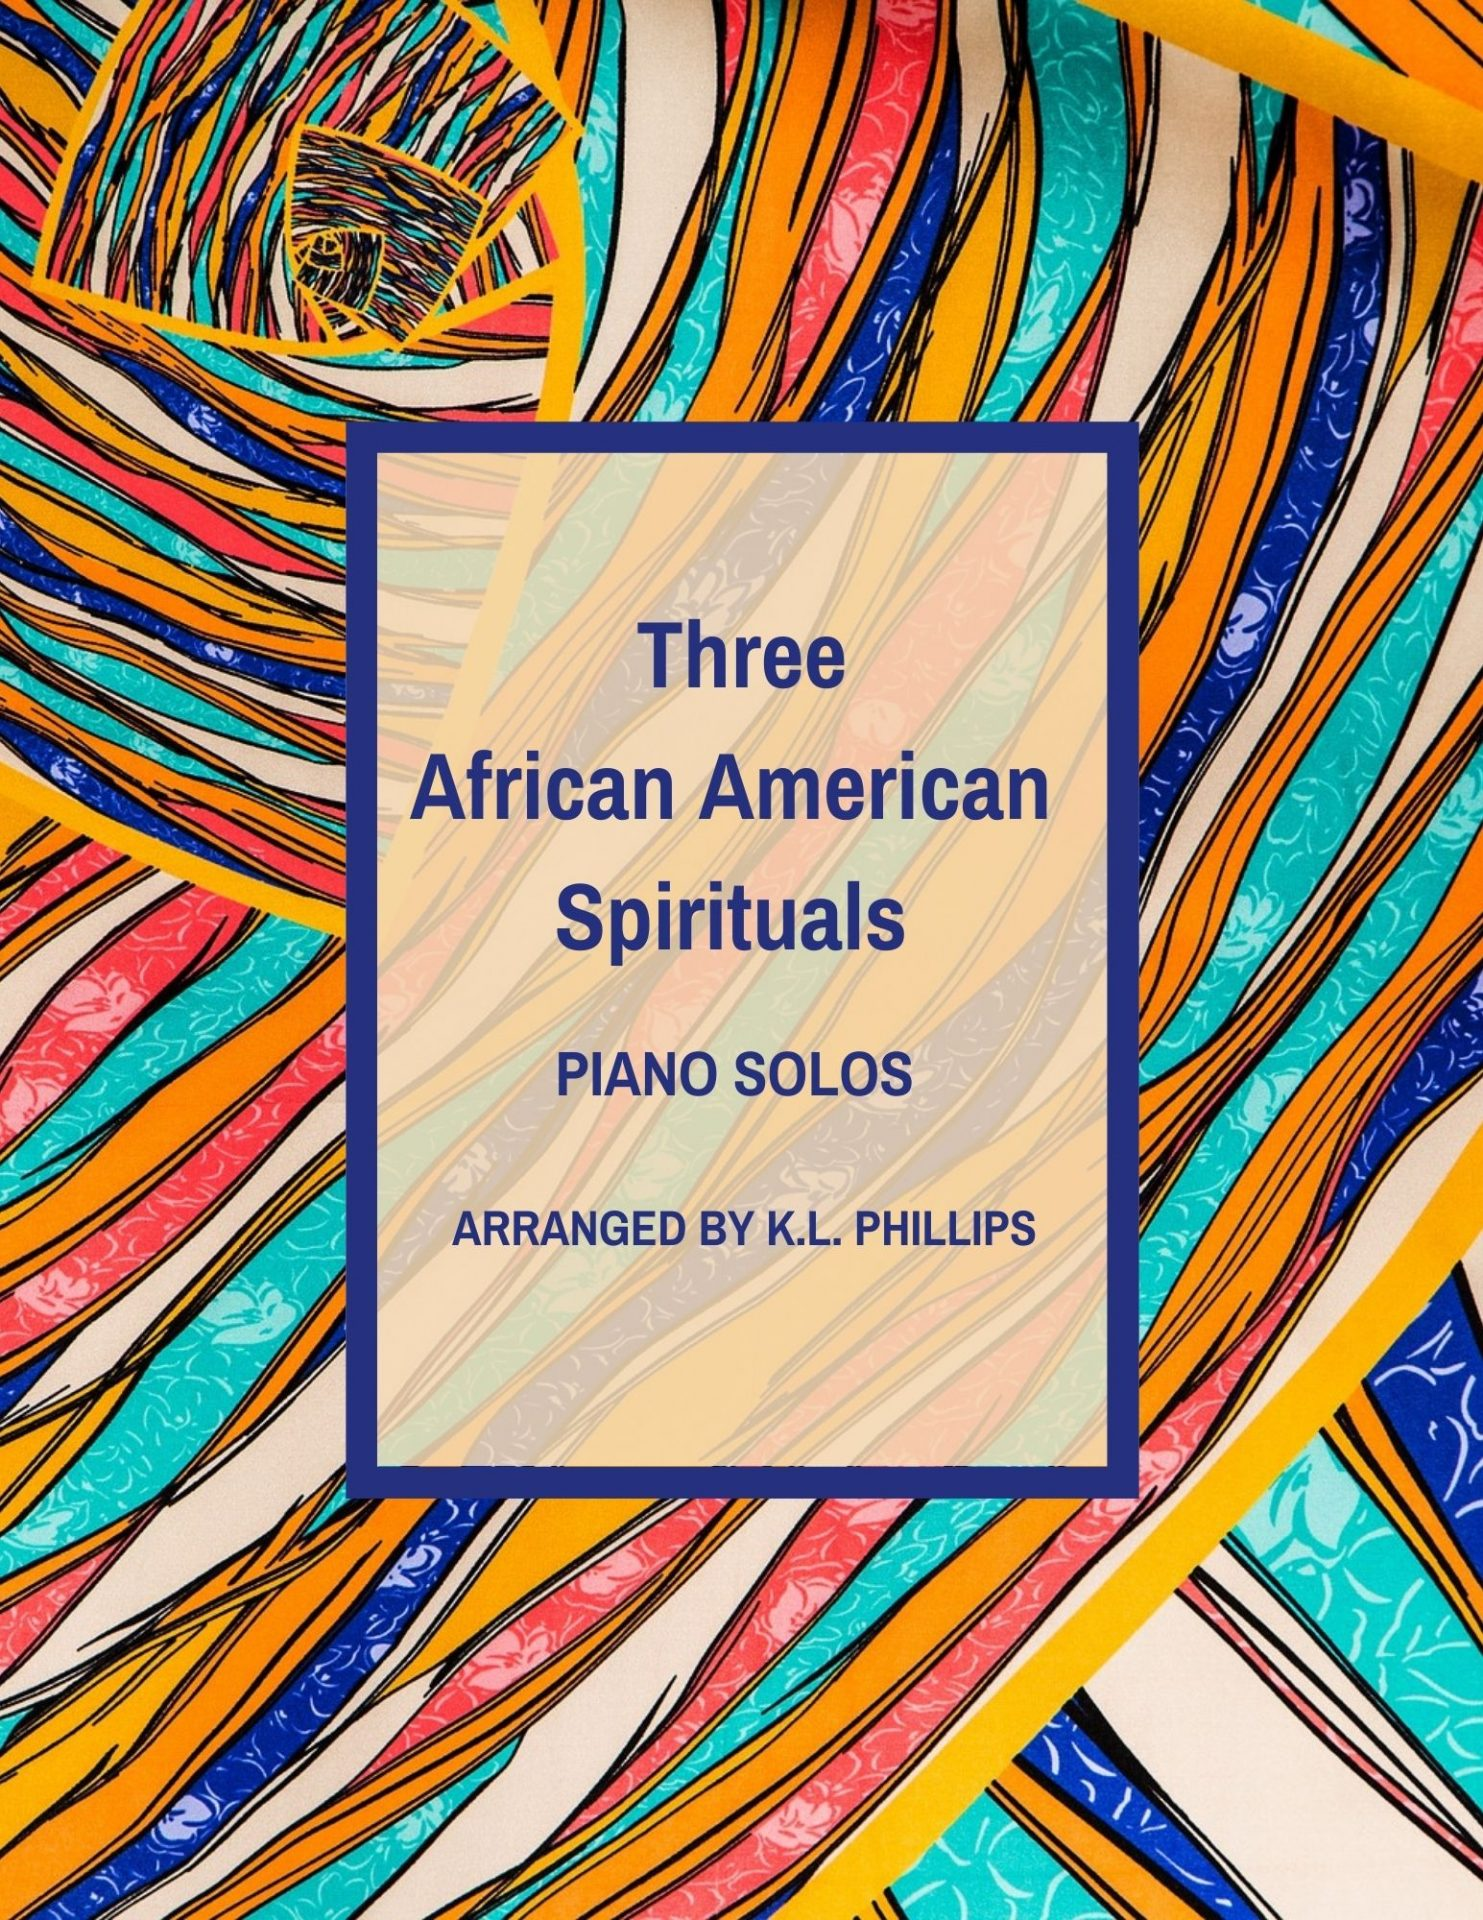 The African American Spirituals - Piano Solos web cover